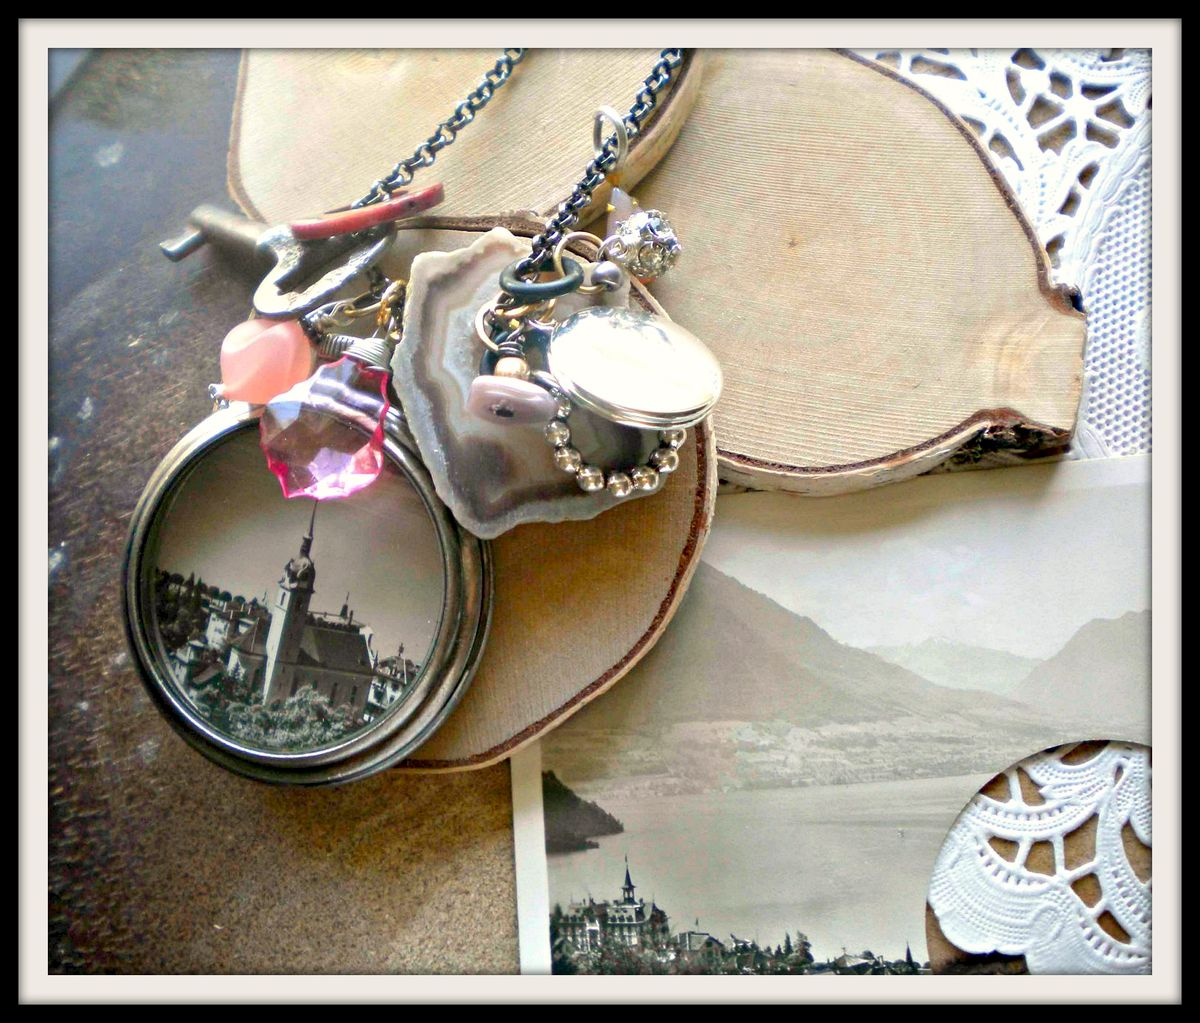 Vintage Postcard Pocket Watch Style Necklace - In the Clouds - product image